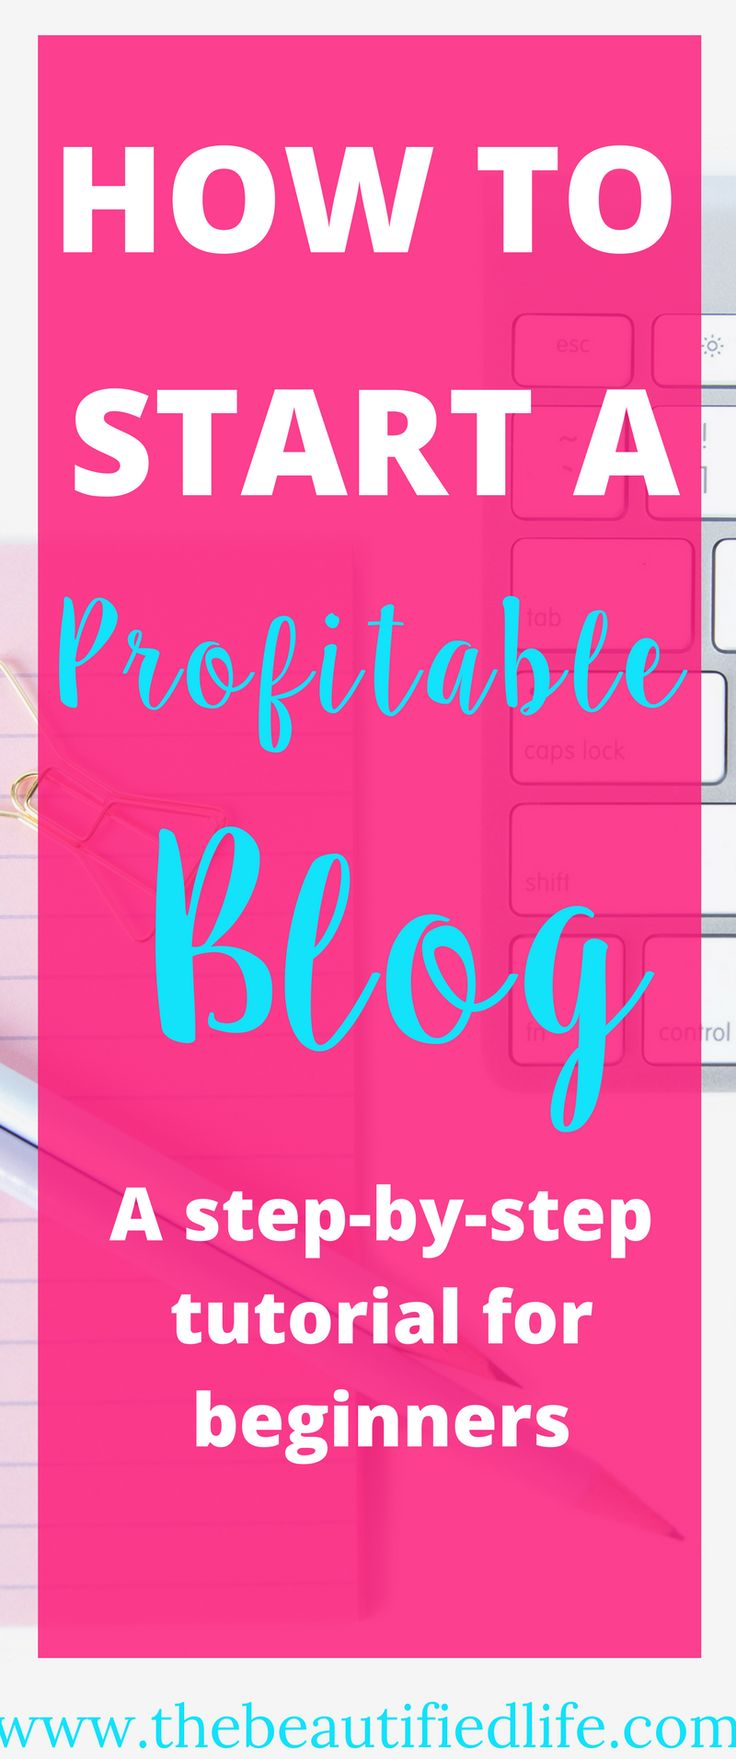 How to start a money making blog. Have you been dreaming of one day starting a profitable blog? I did too, for quite some time. So i wrote this comprehensive step-by-step tutorial to walk you through it every step of the way.